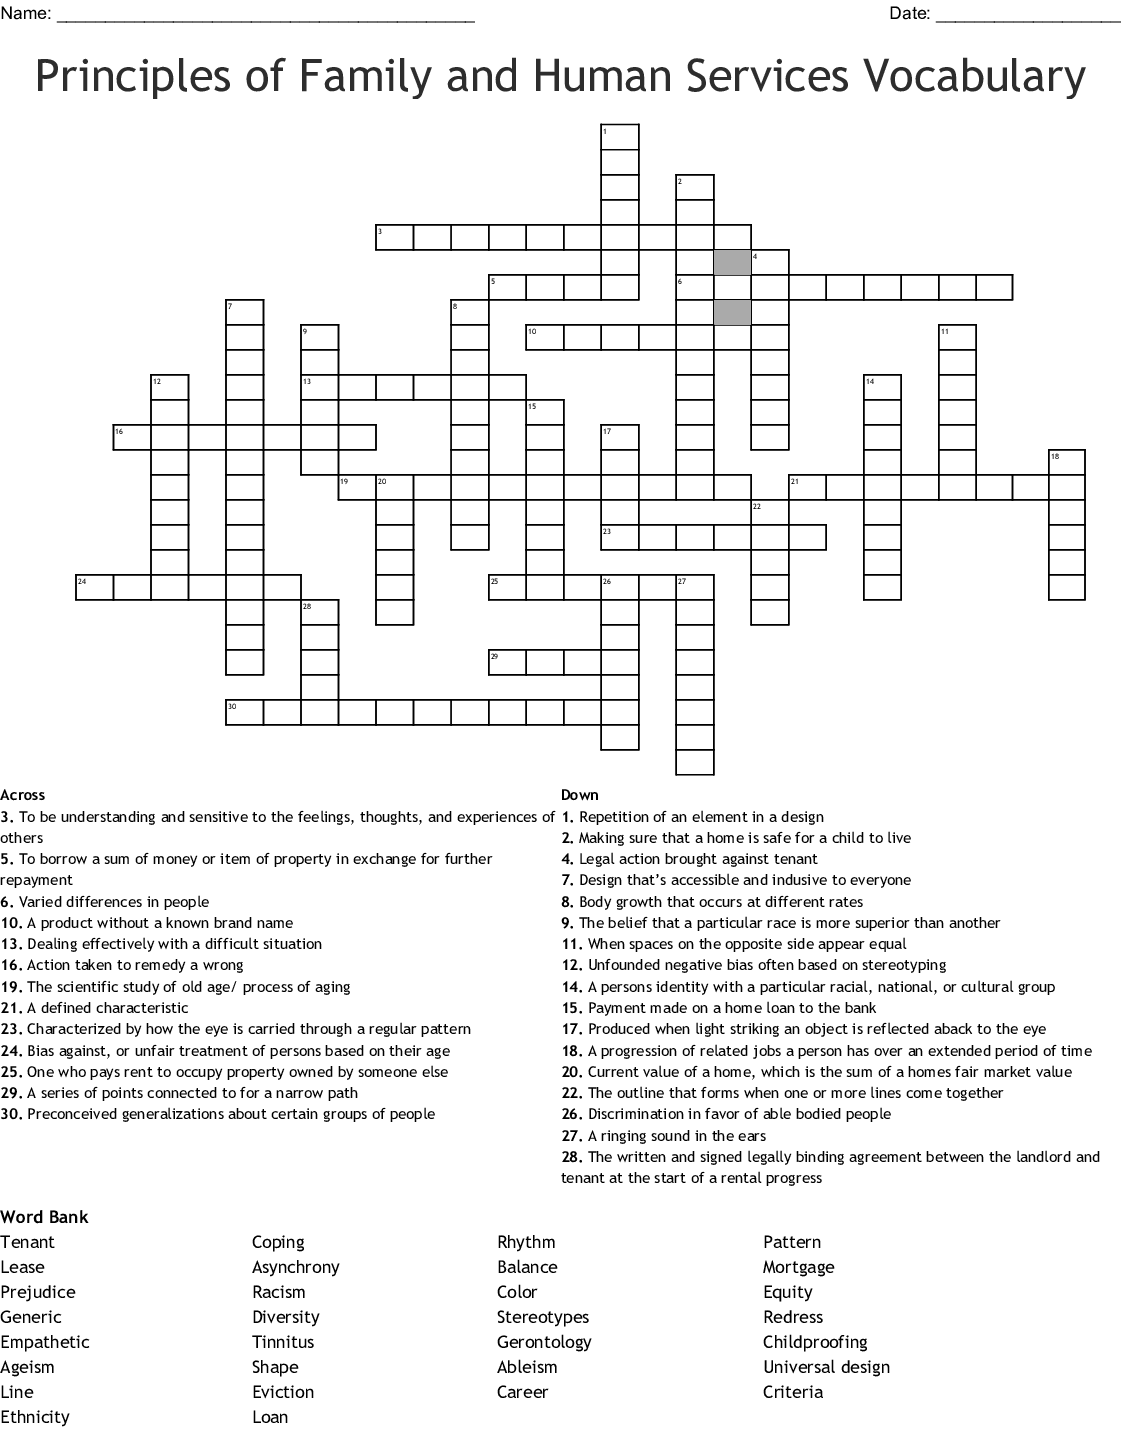 Principles Of Family And Human Services Vocabulary Crossword